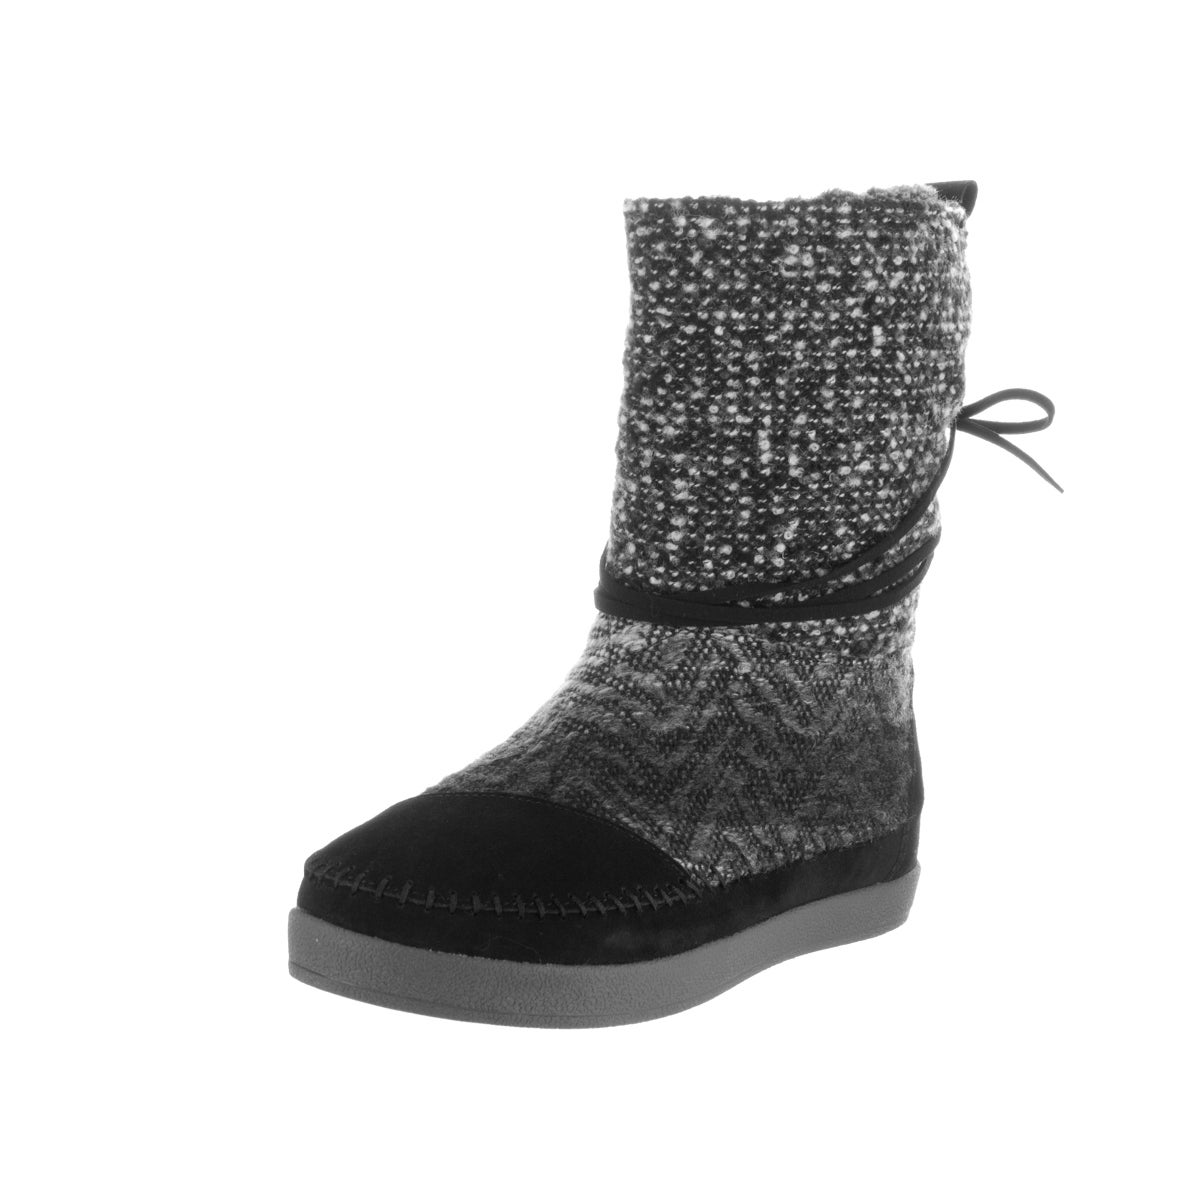 b0d0503d226 Shop Toms Women s Nepal Boot - Free Shipping Today - Overstock - 13518911